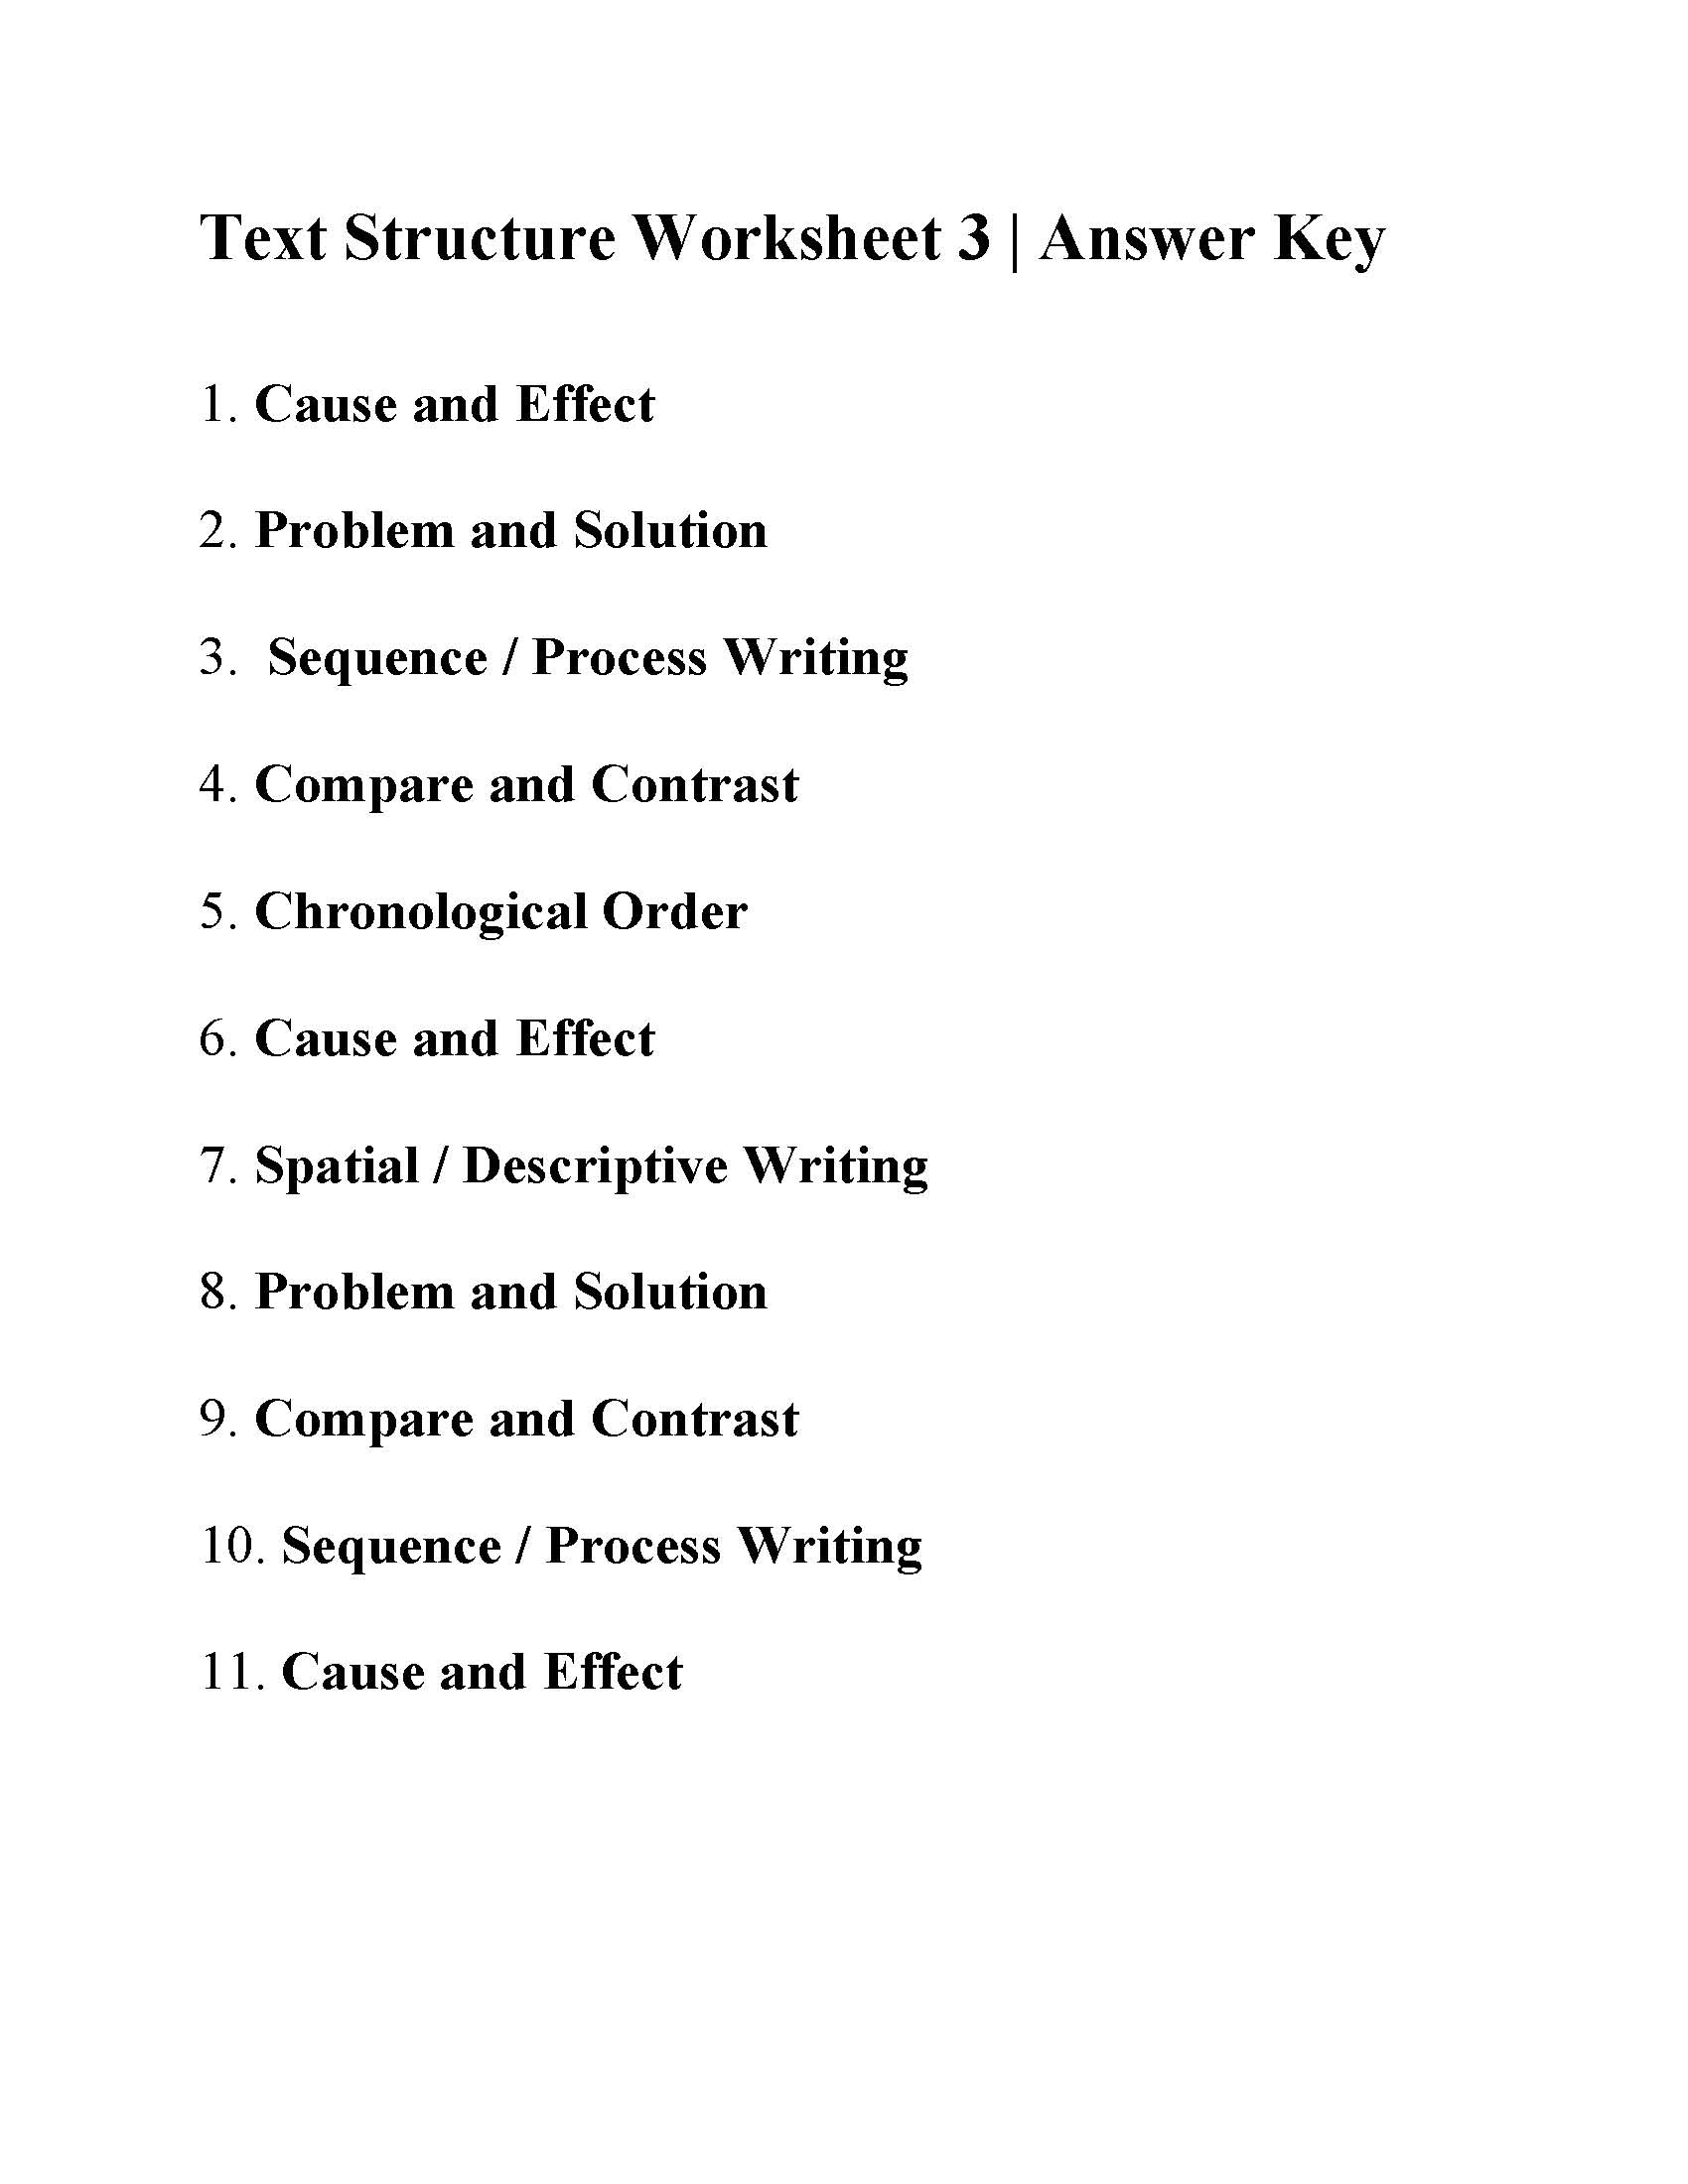 Text Structure Worksheet 3